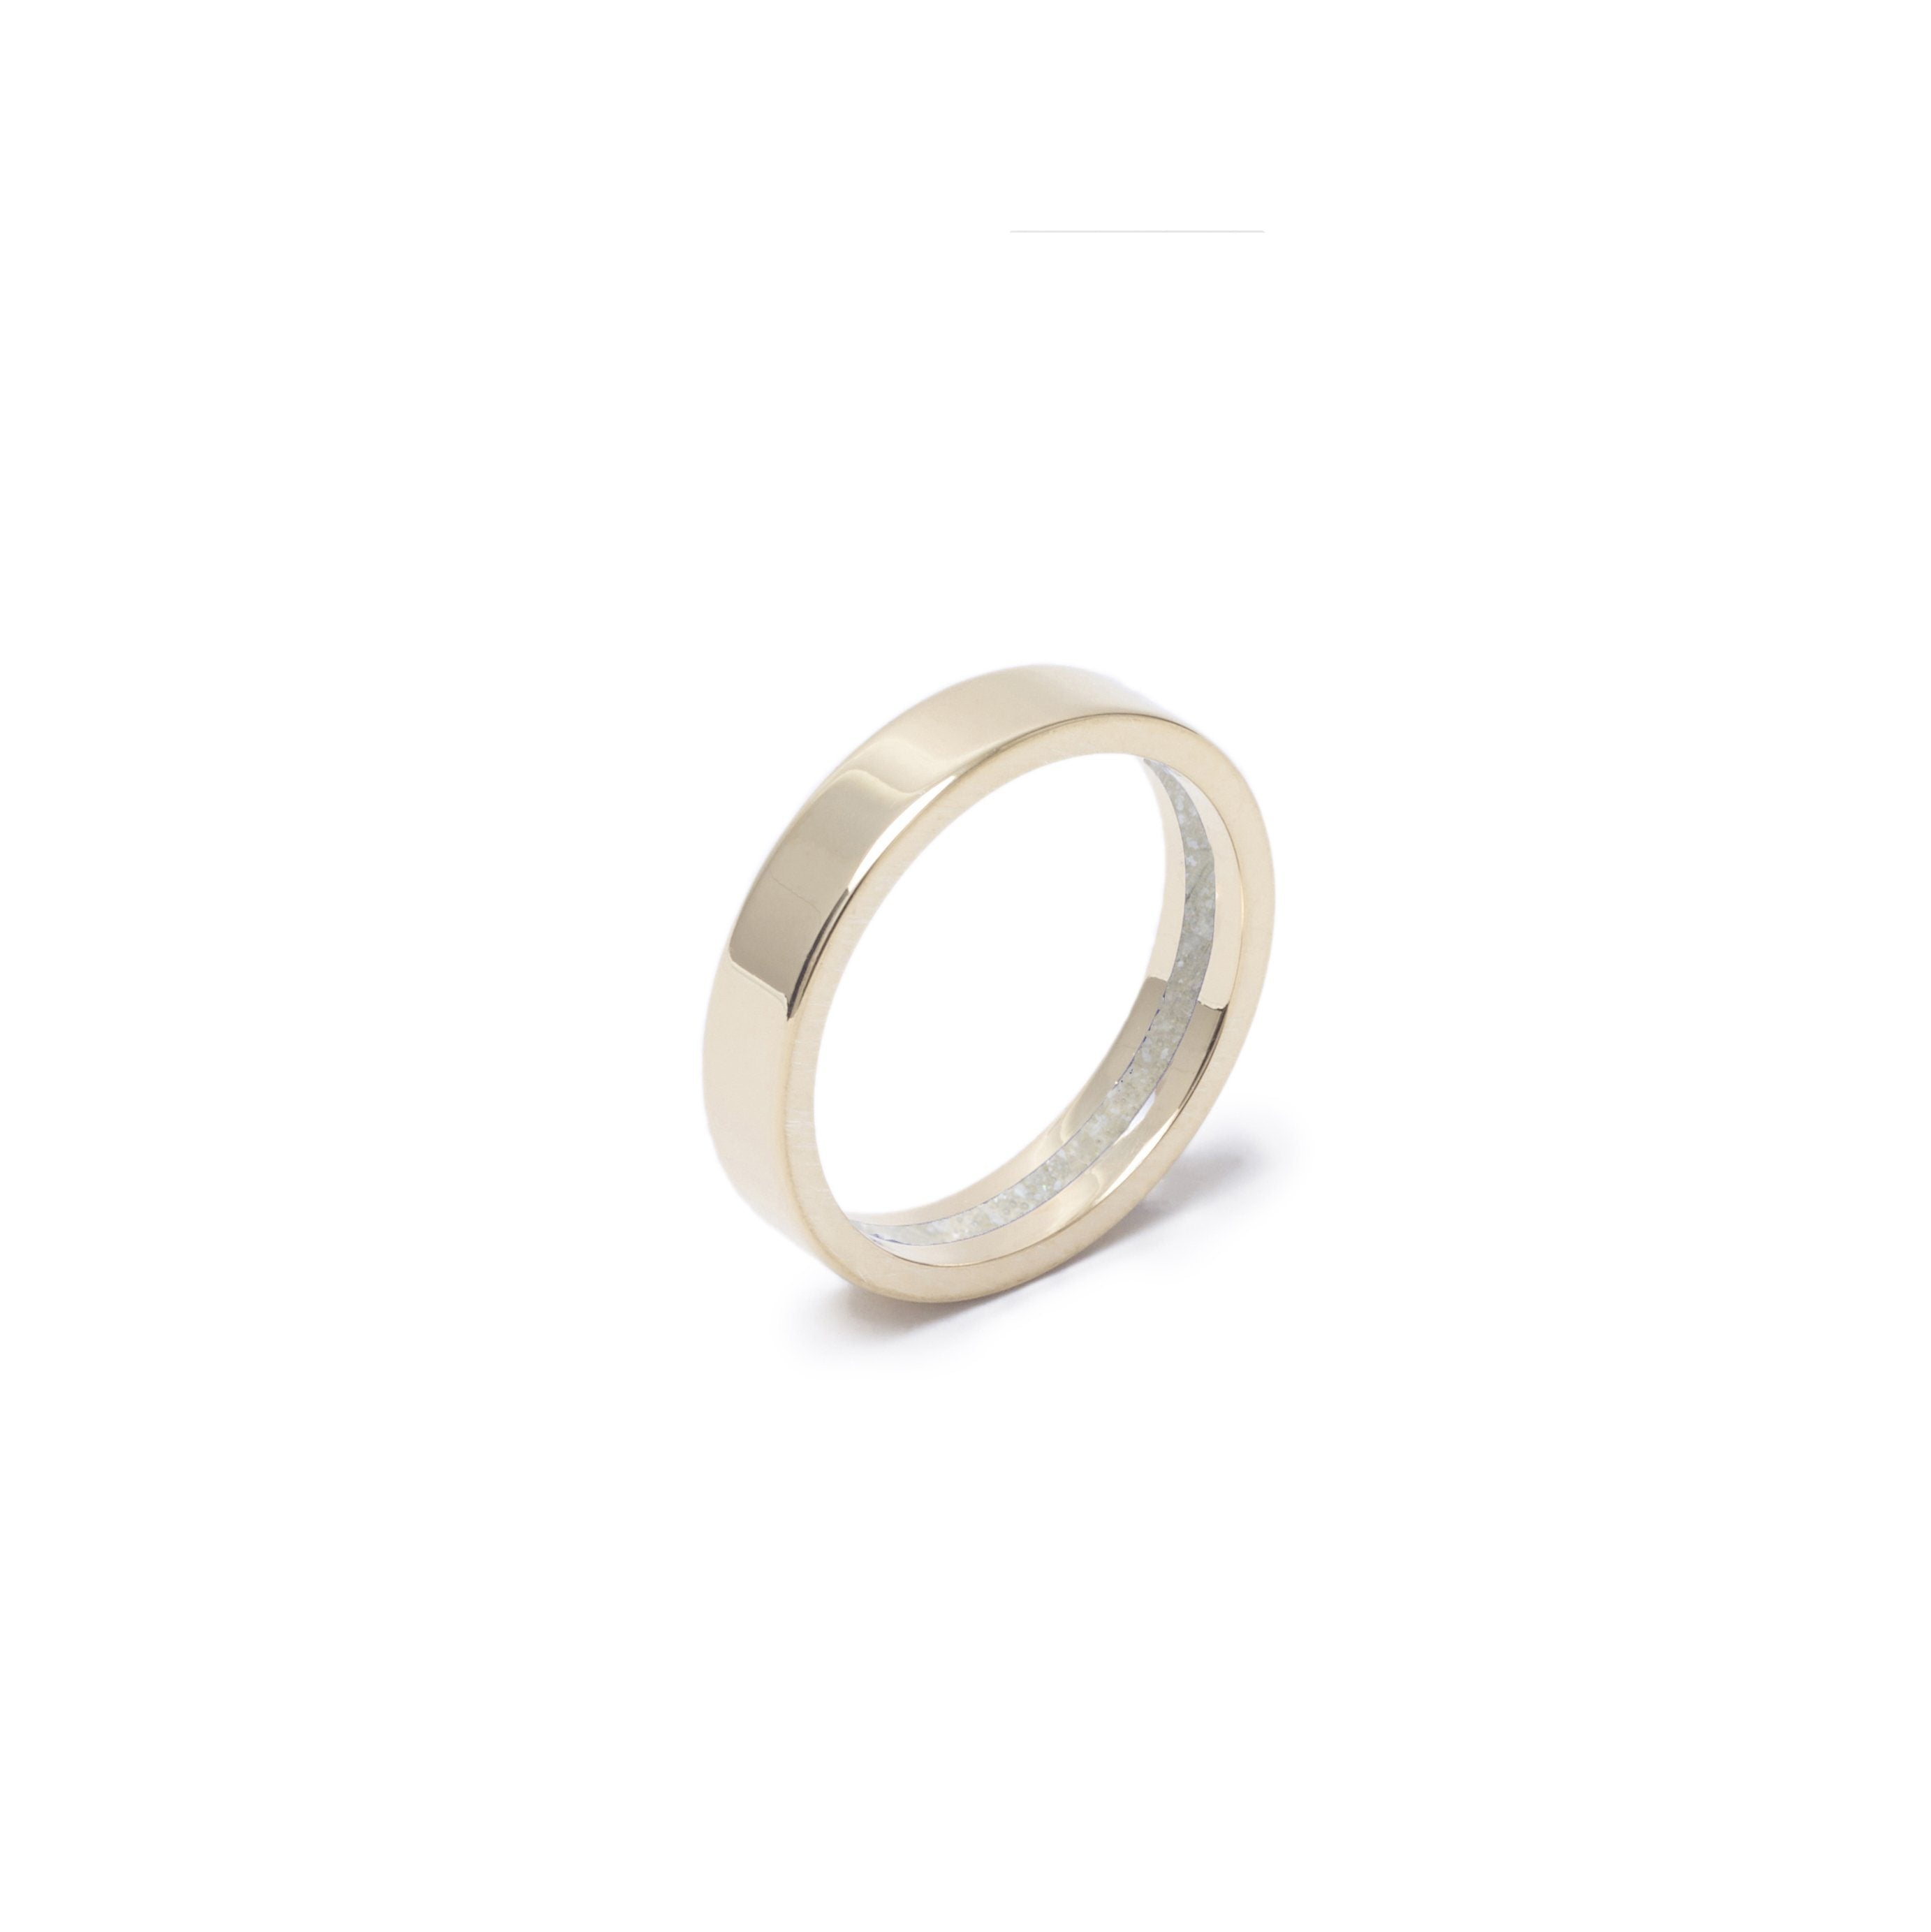 Everence Ring, 10k Yellow Gold everence.life 4mm Pearl